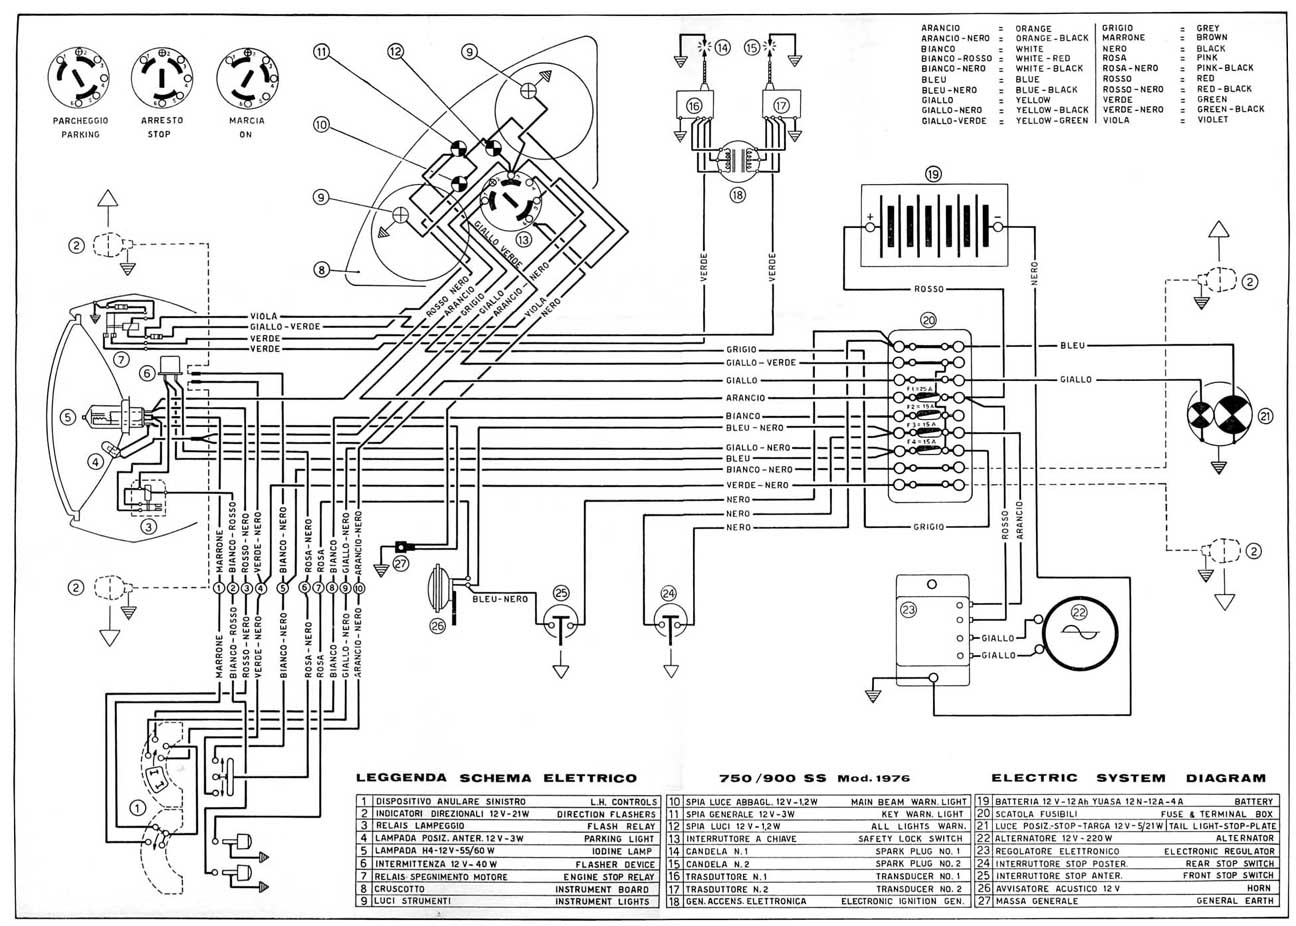 hight resolution of 1976 750 900 ss wiring diagram